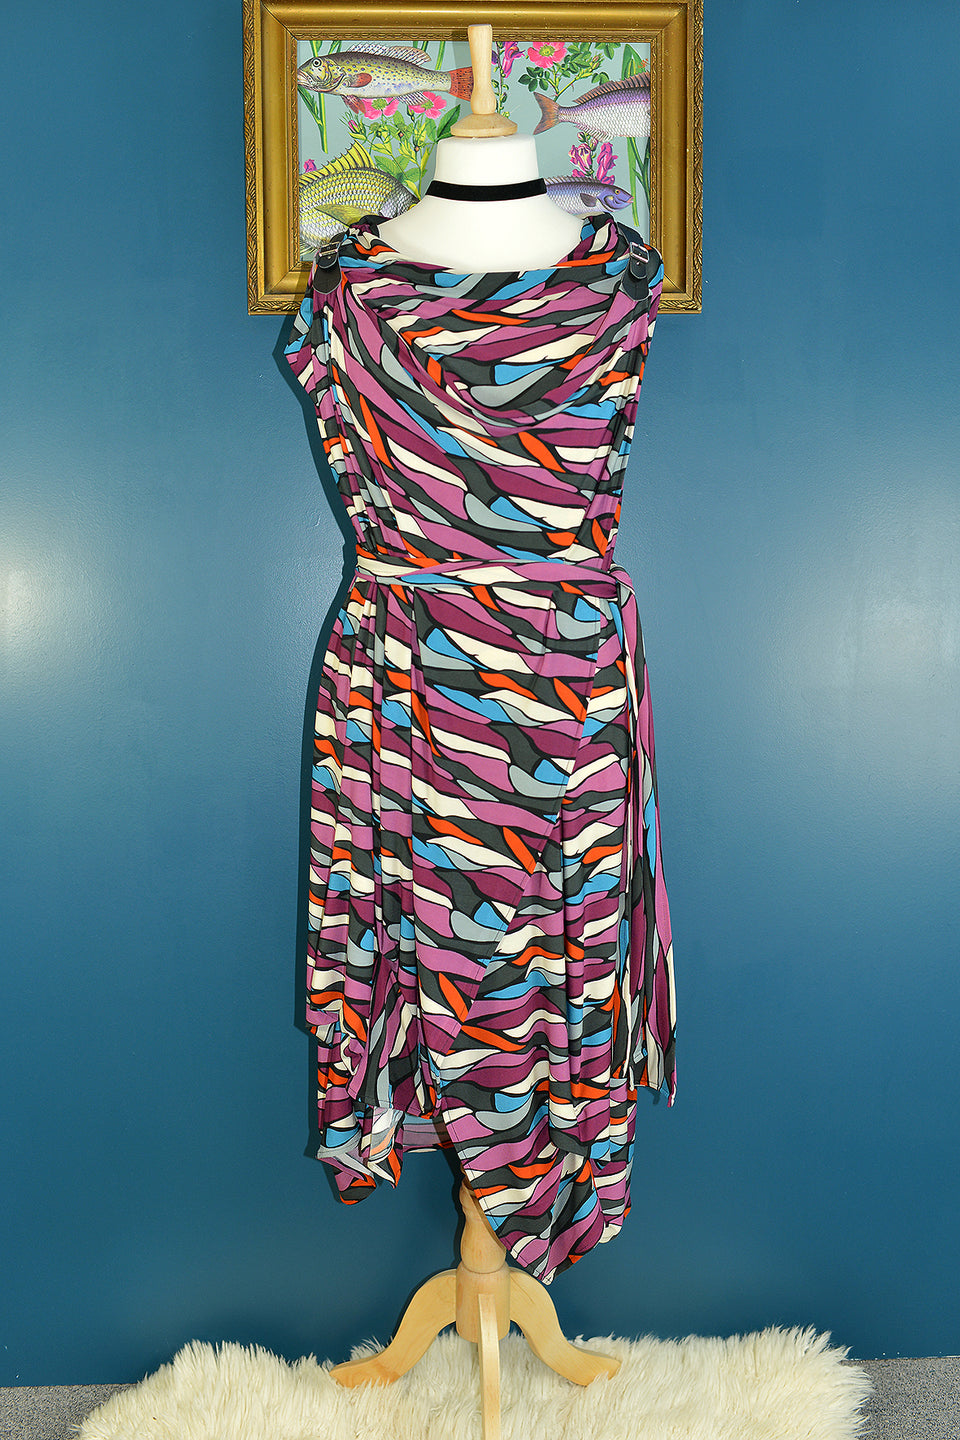 JOLABY Quirky Abstract Print Two Layer Wrap Around Dress, One Size. Pre-loved.